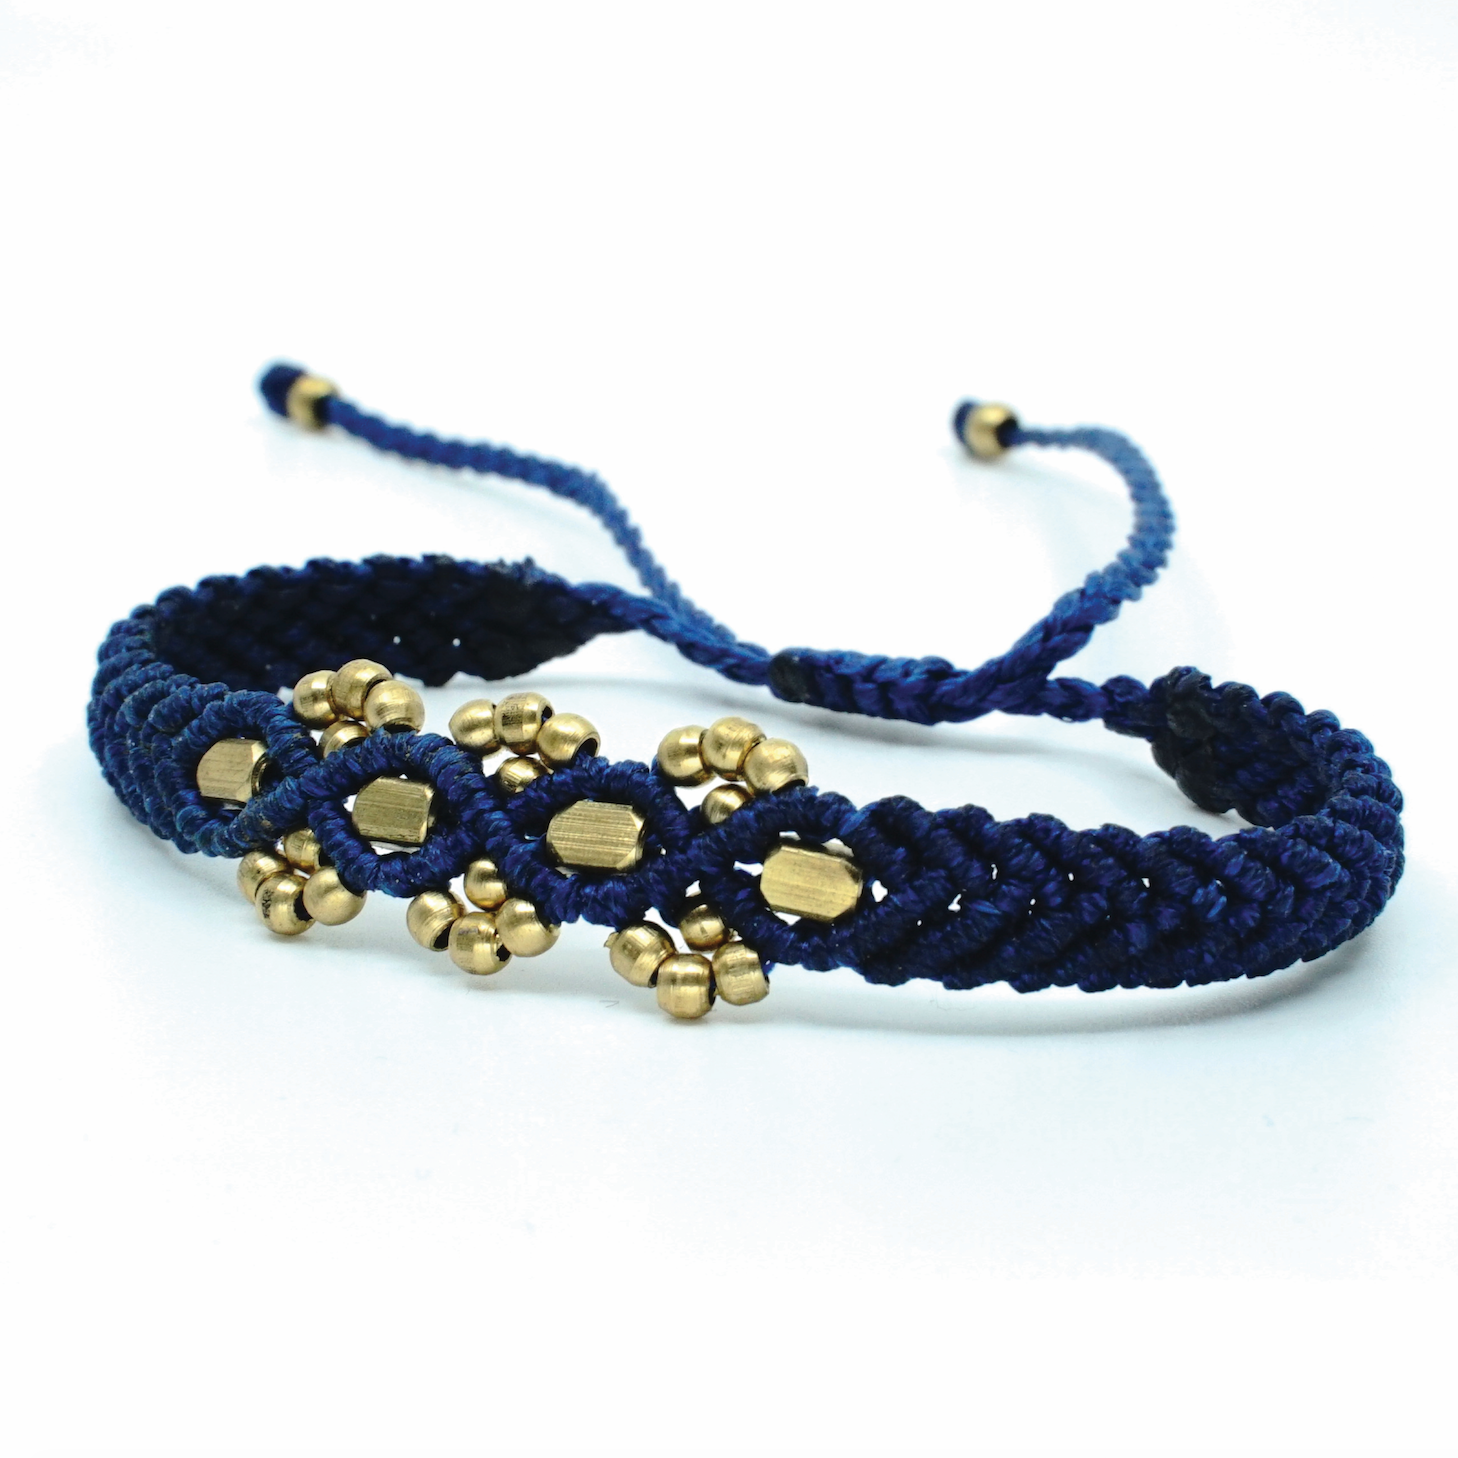 The Chaar Bracelet with Flat Bead